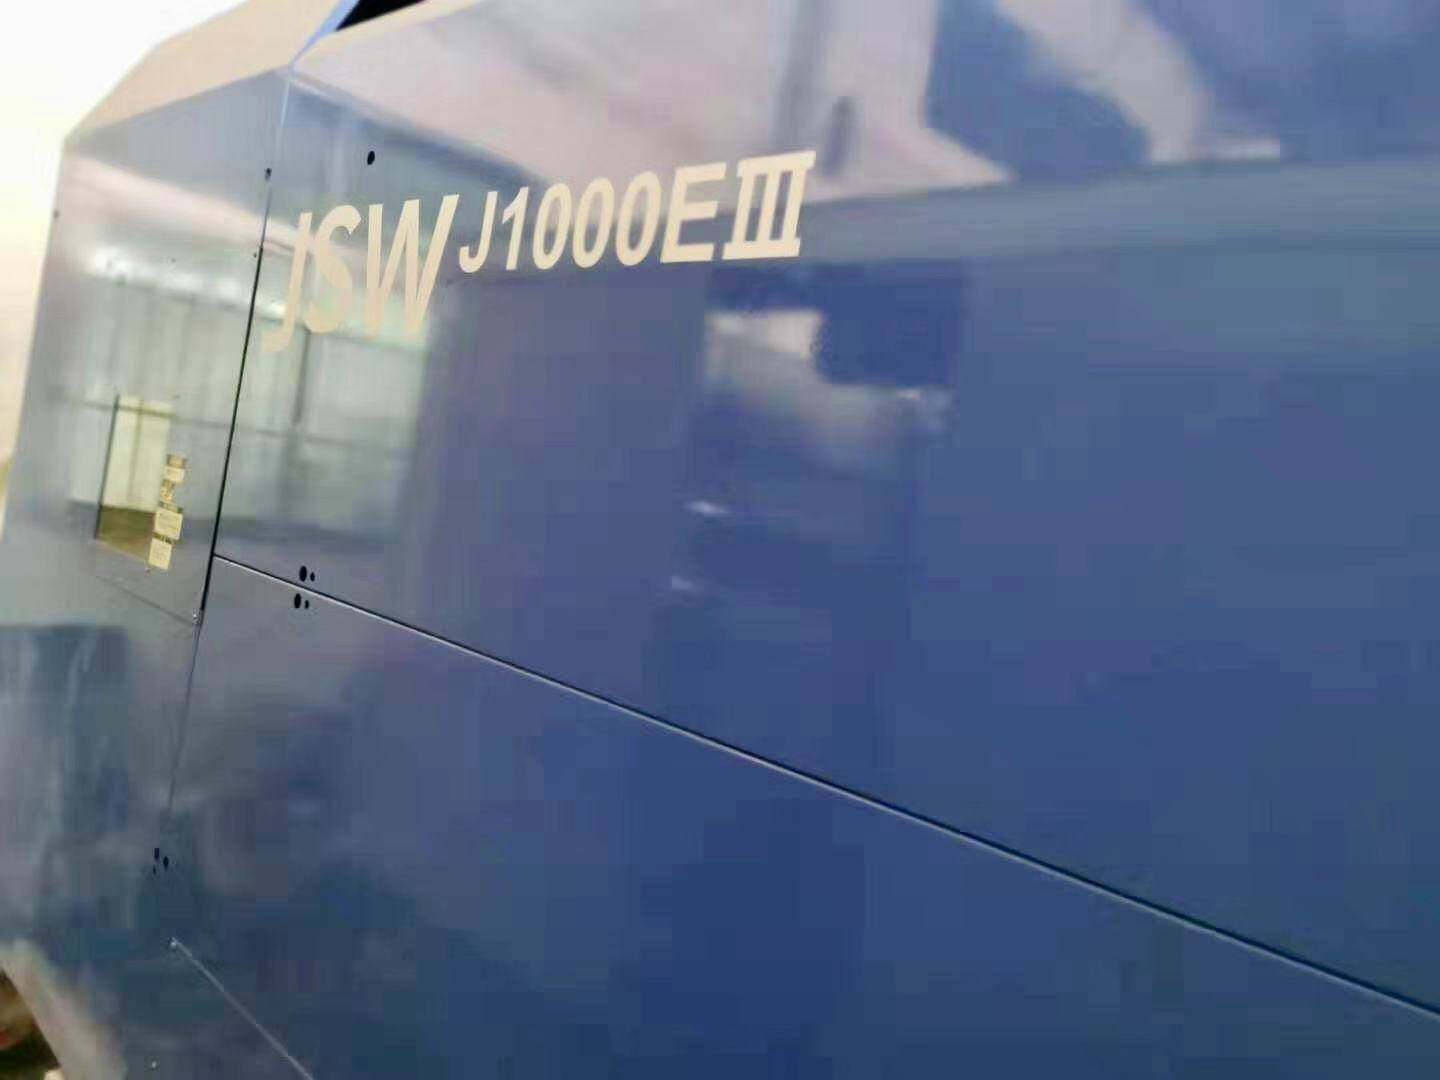 JSW 1000t used Plastic Injection Molding Machine Featured Image